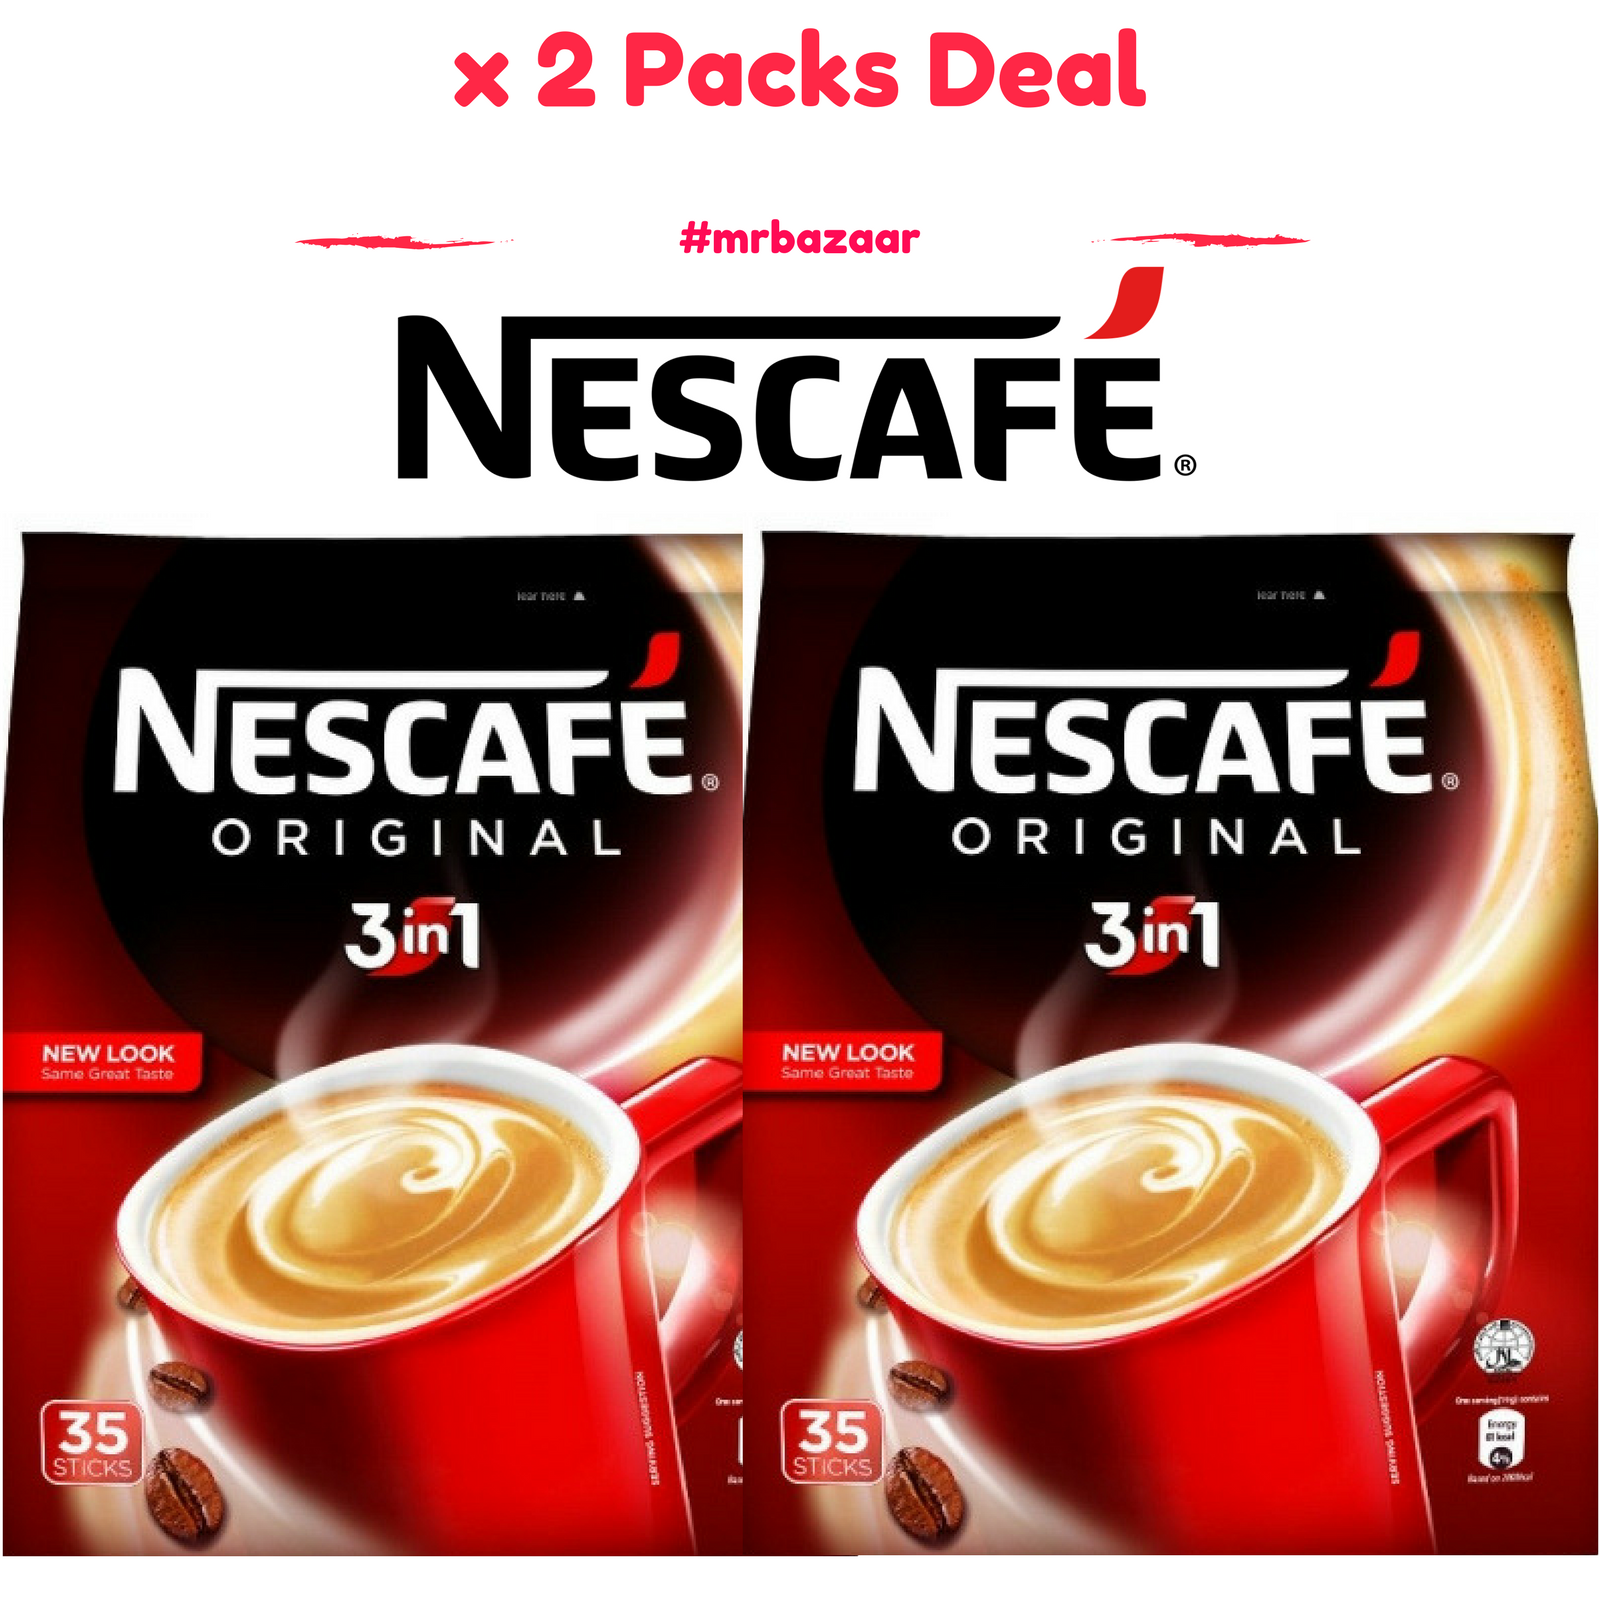 nescafe original maturity stage Effects of maturity stage and lactic acid bacteria on the fermentation quality and aerobic stability of siberian provided the original work is properly.